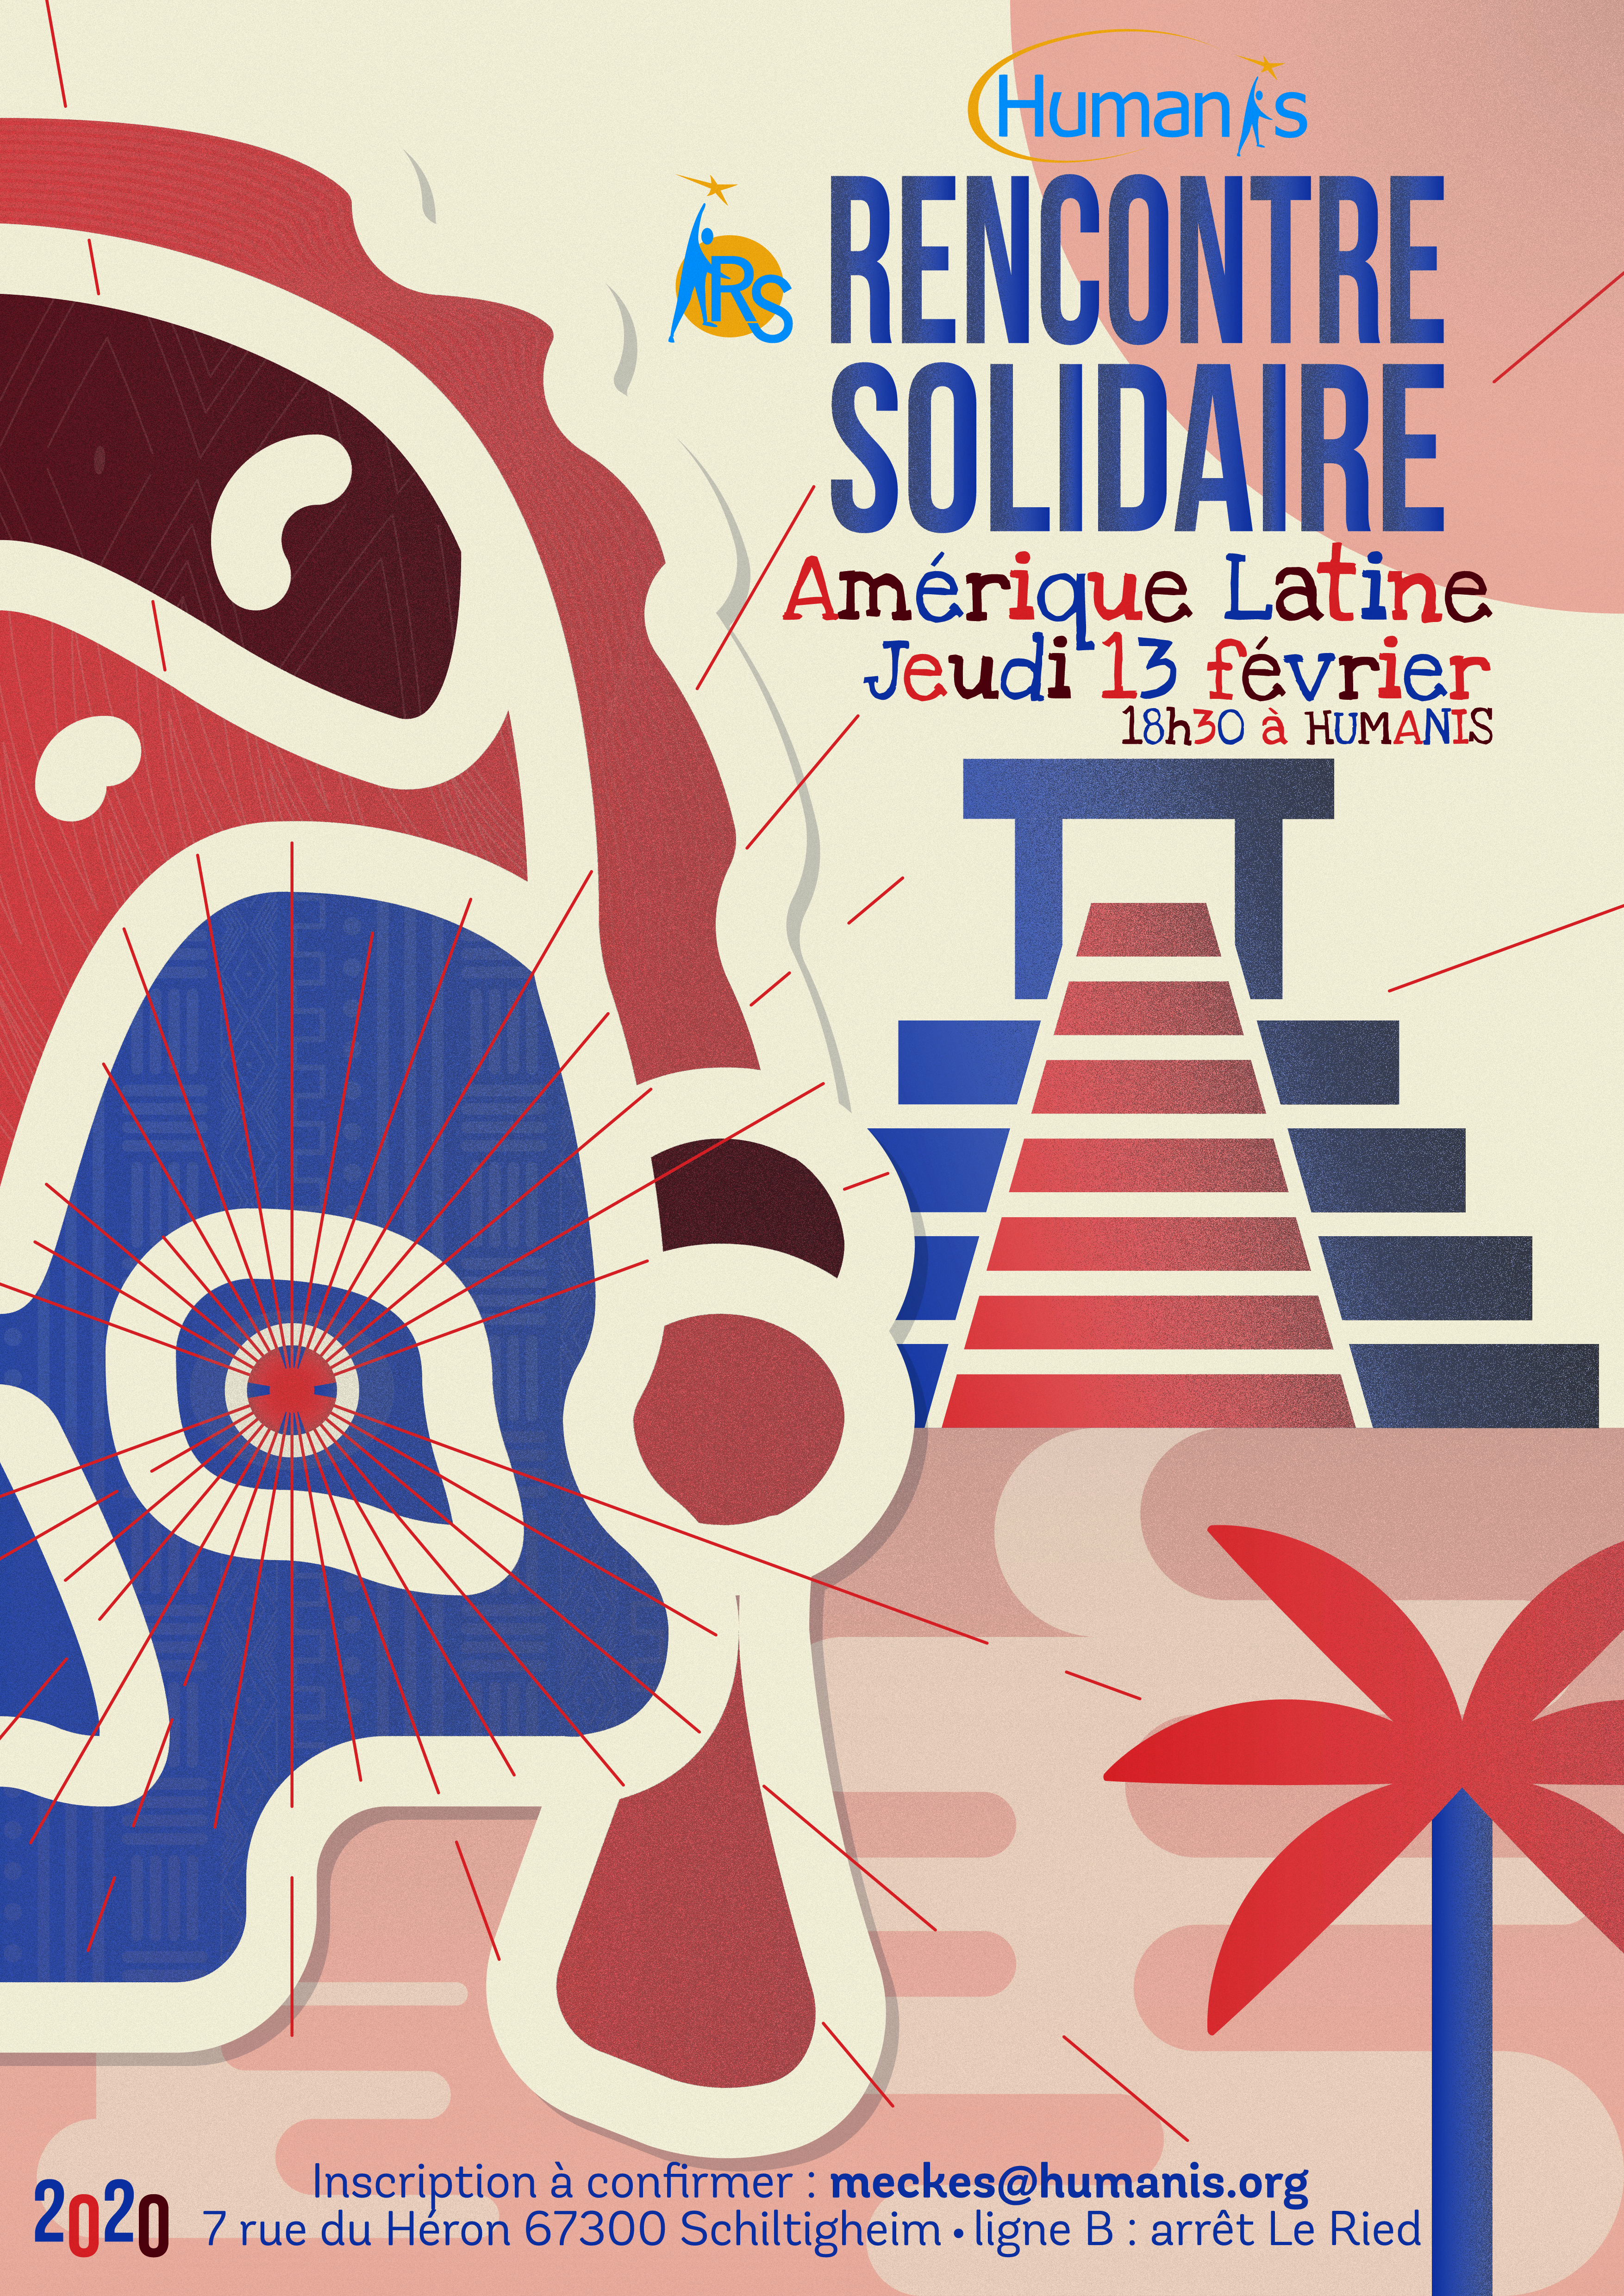 Rencontre solidaire